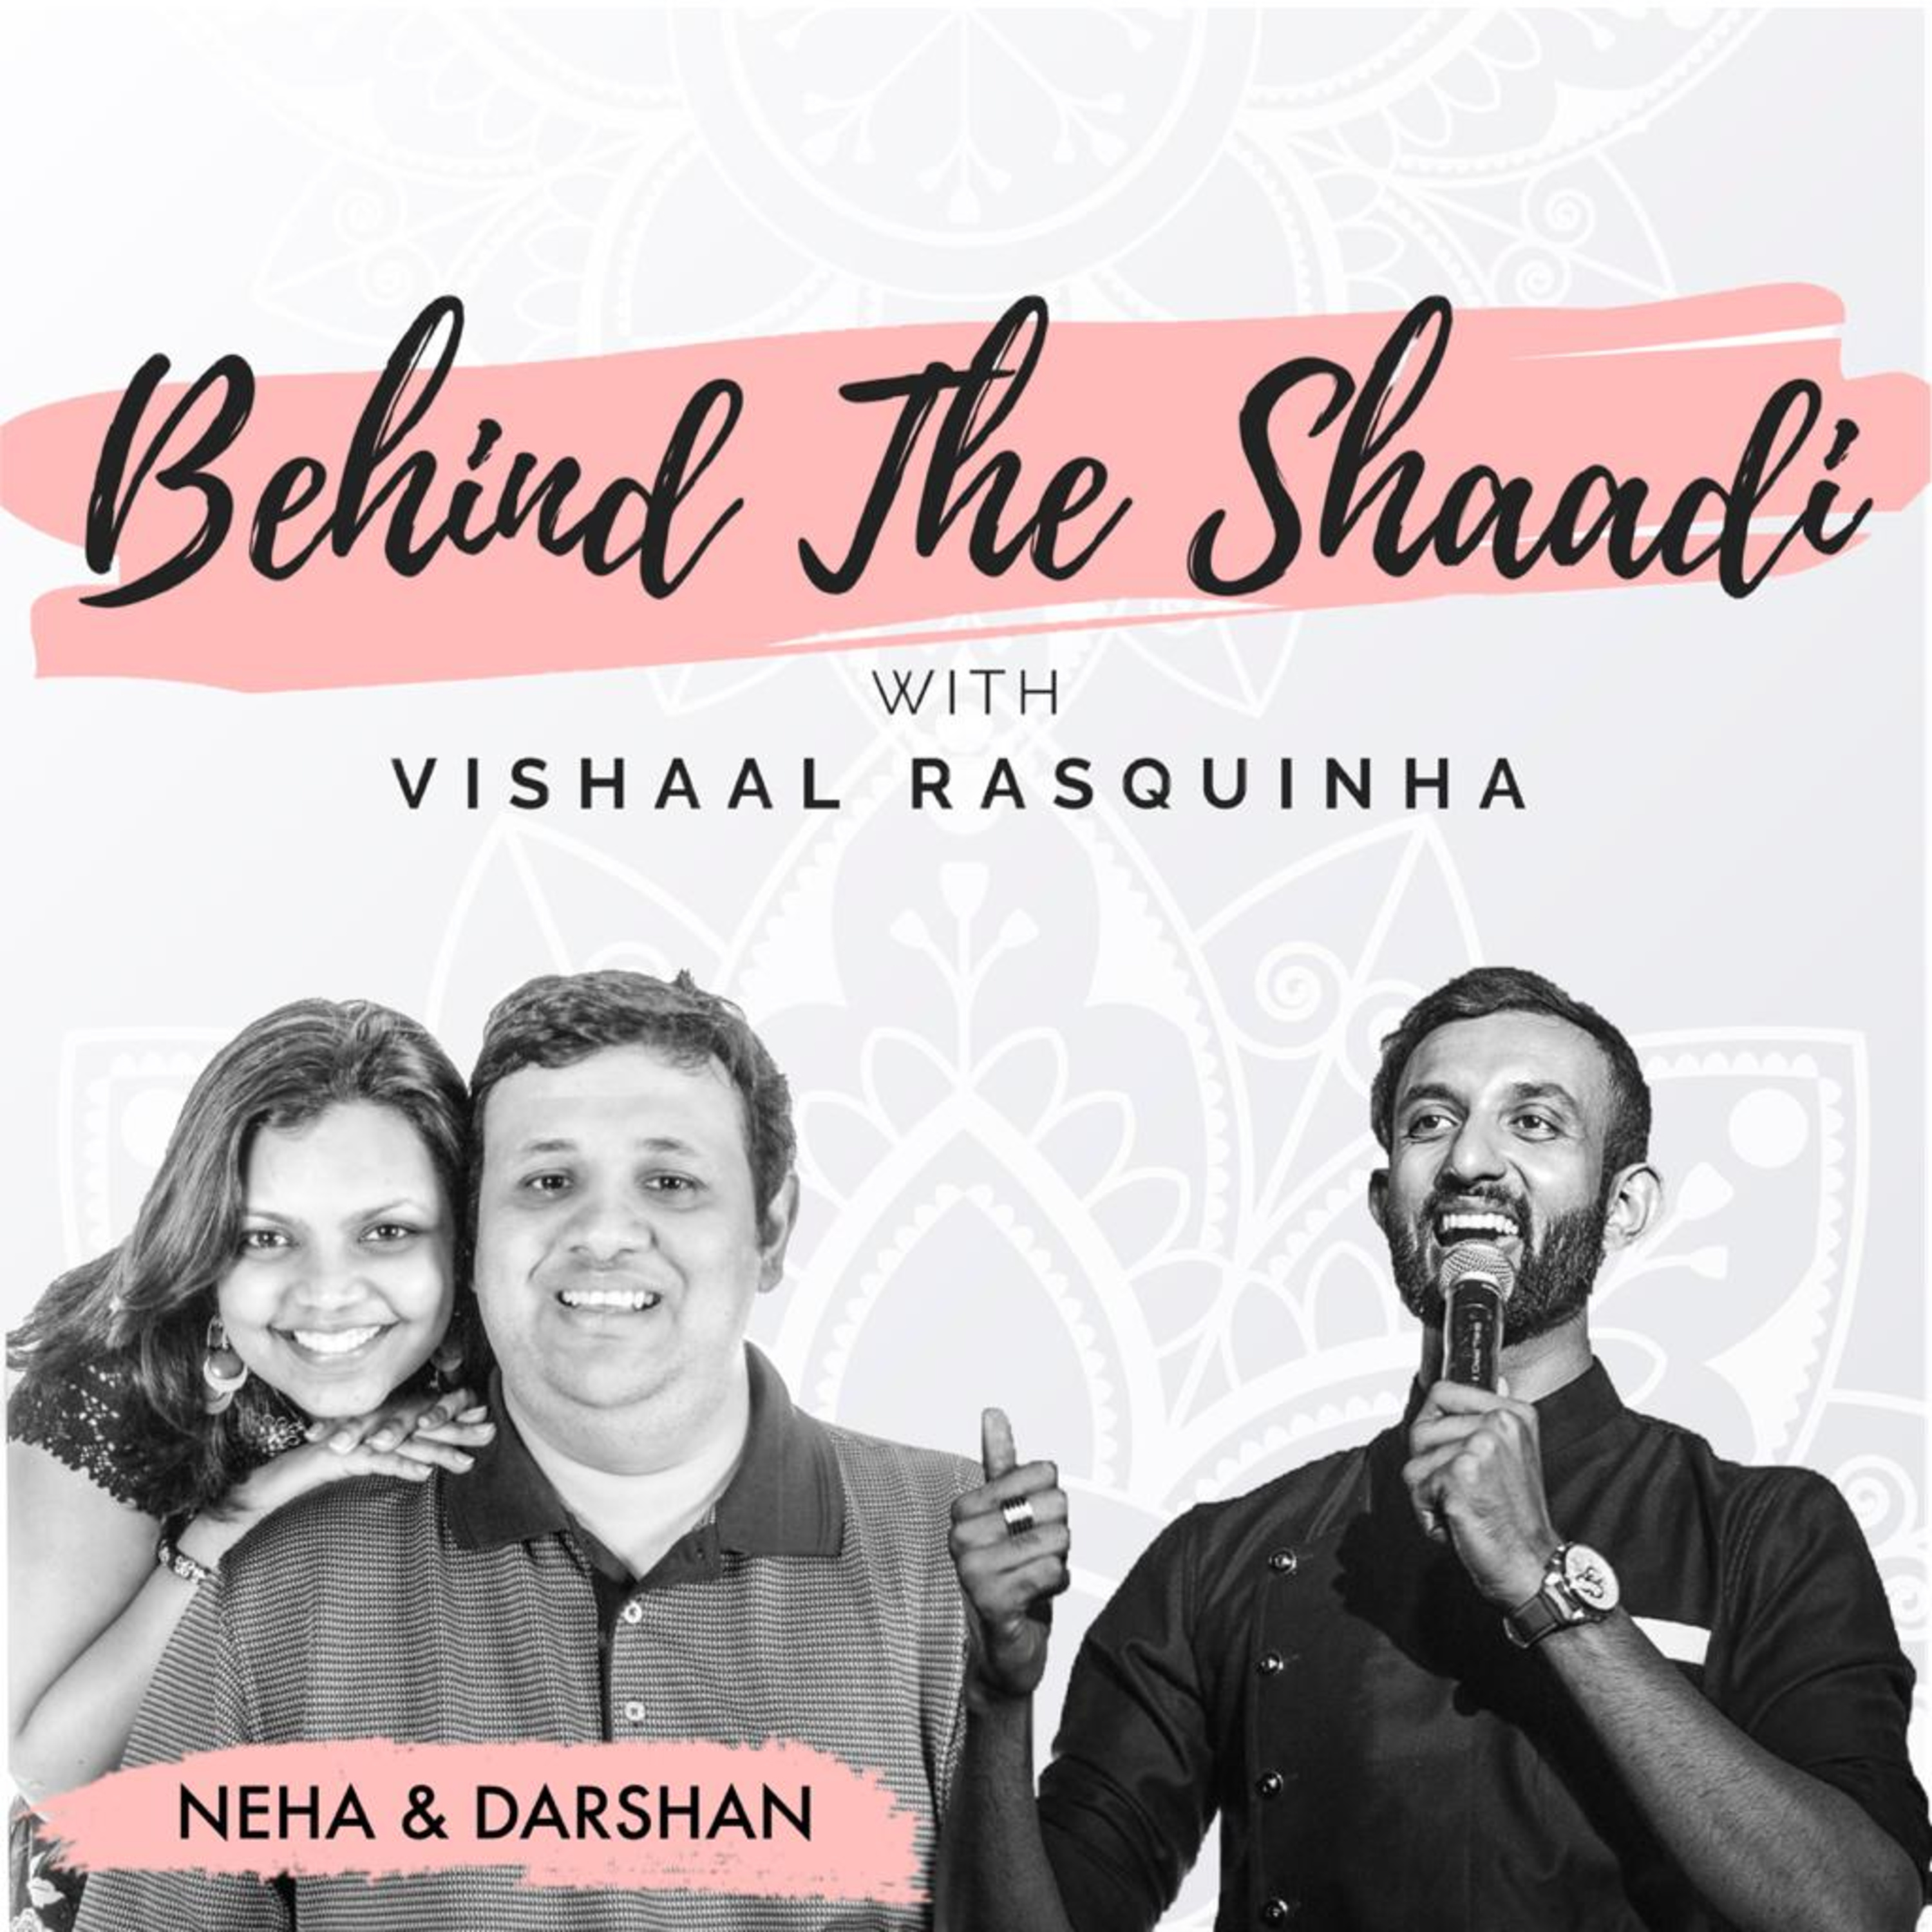 Neha and Darshan Shroff: The wedding planning pros